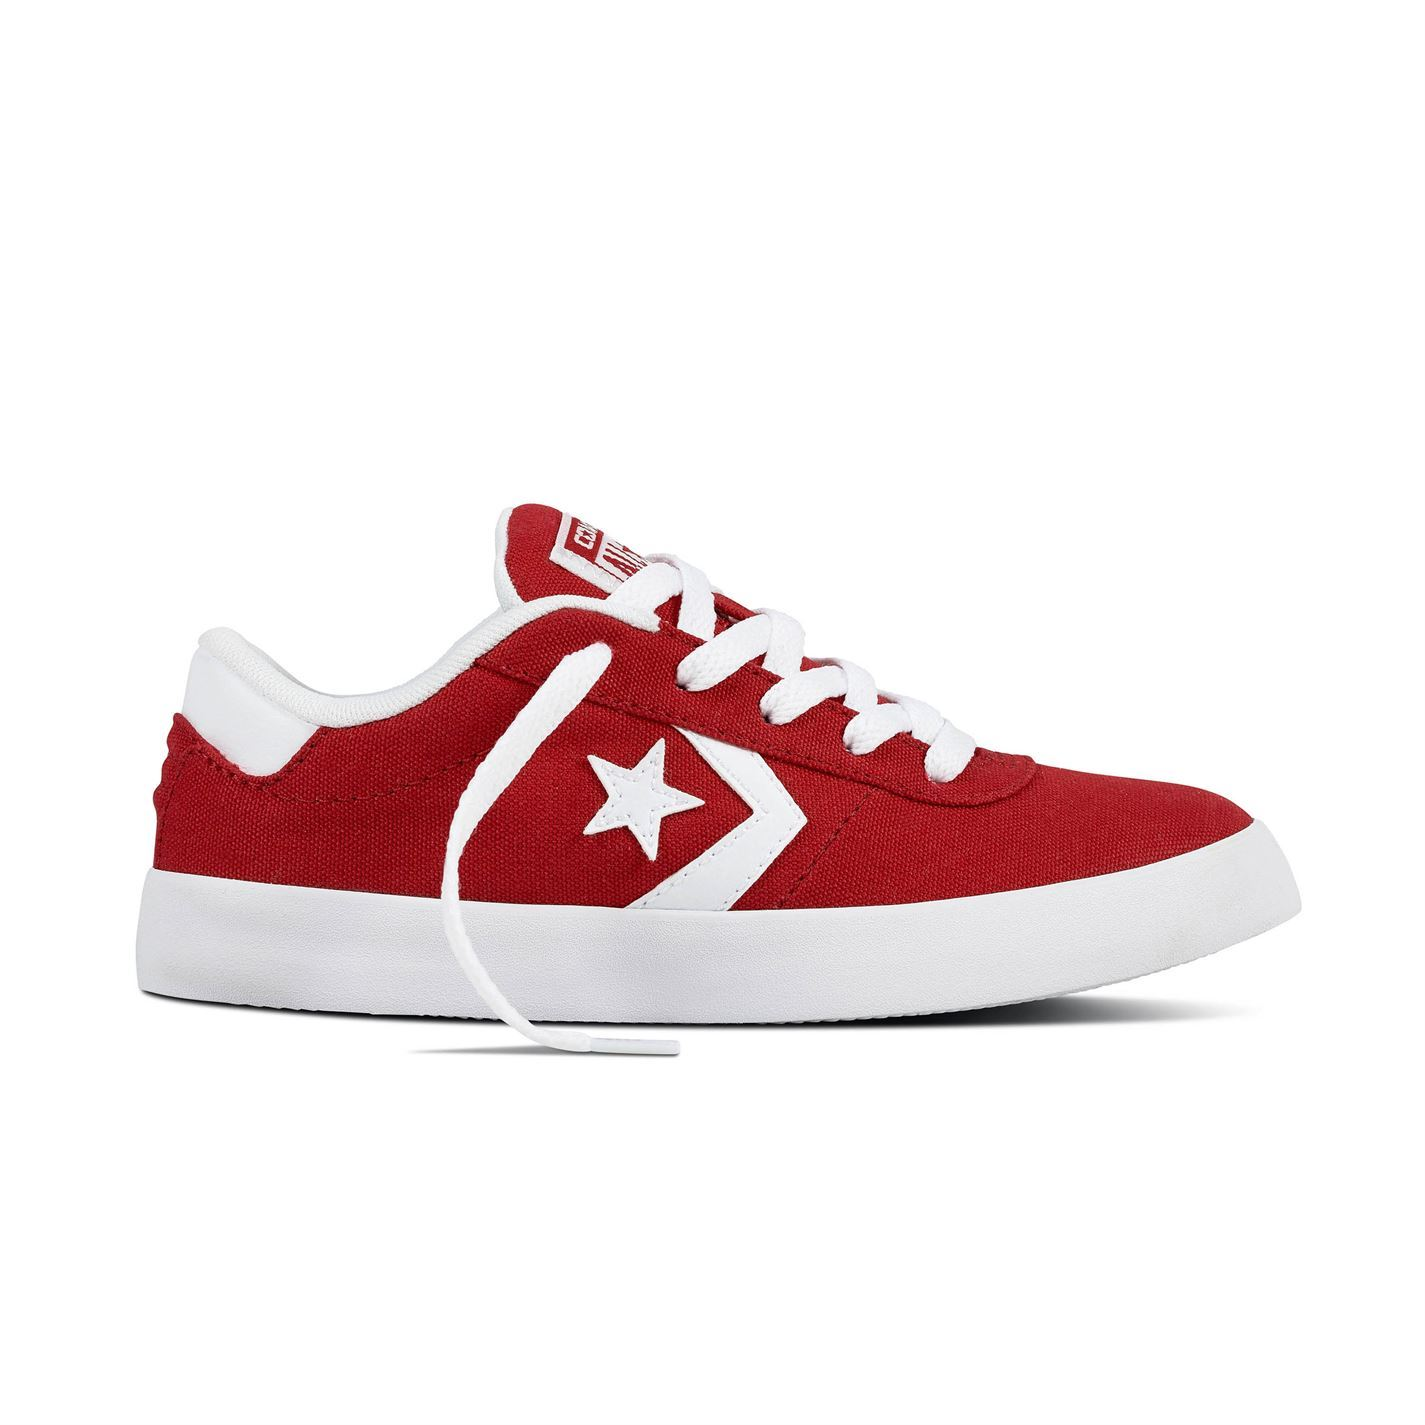 e7cdc872e45 Converse Point Star Trainers Girls Shoes Footwear